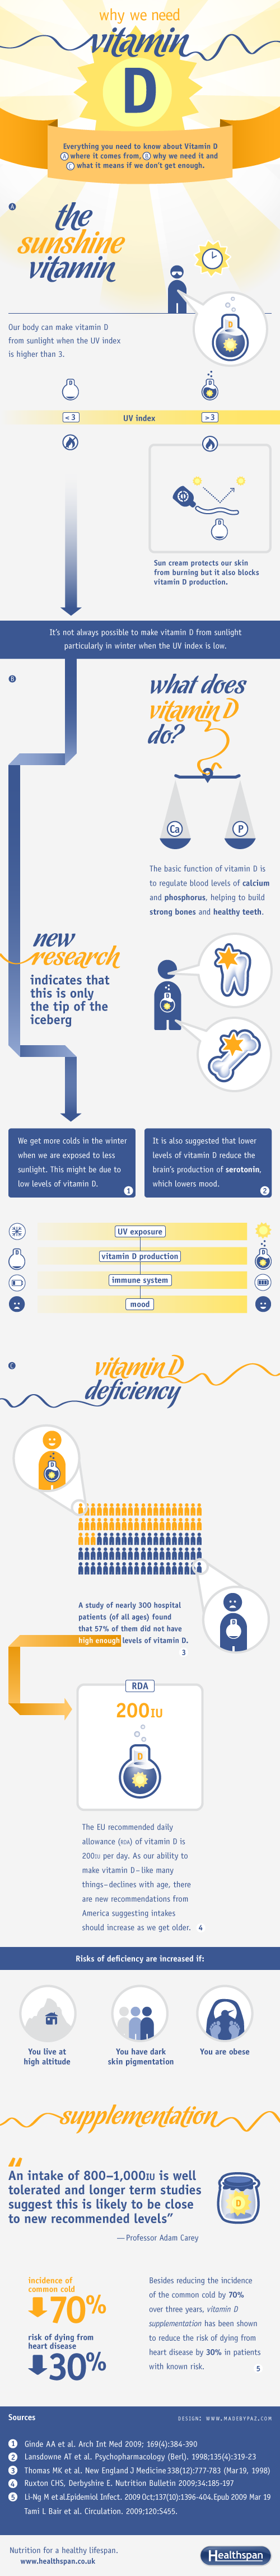 Vitamin D  - Vitamins and Supplements Infographic - Healthspan